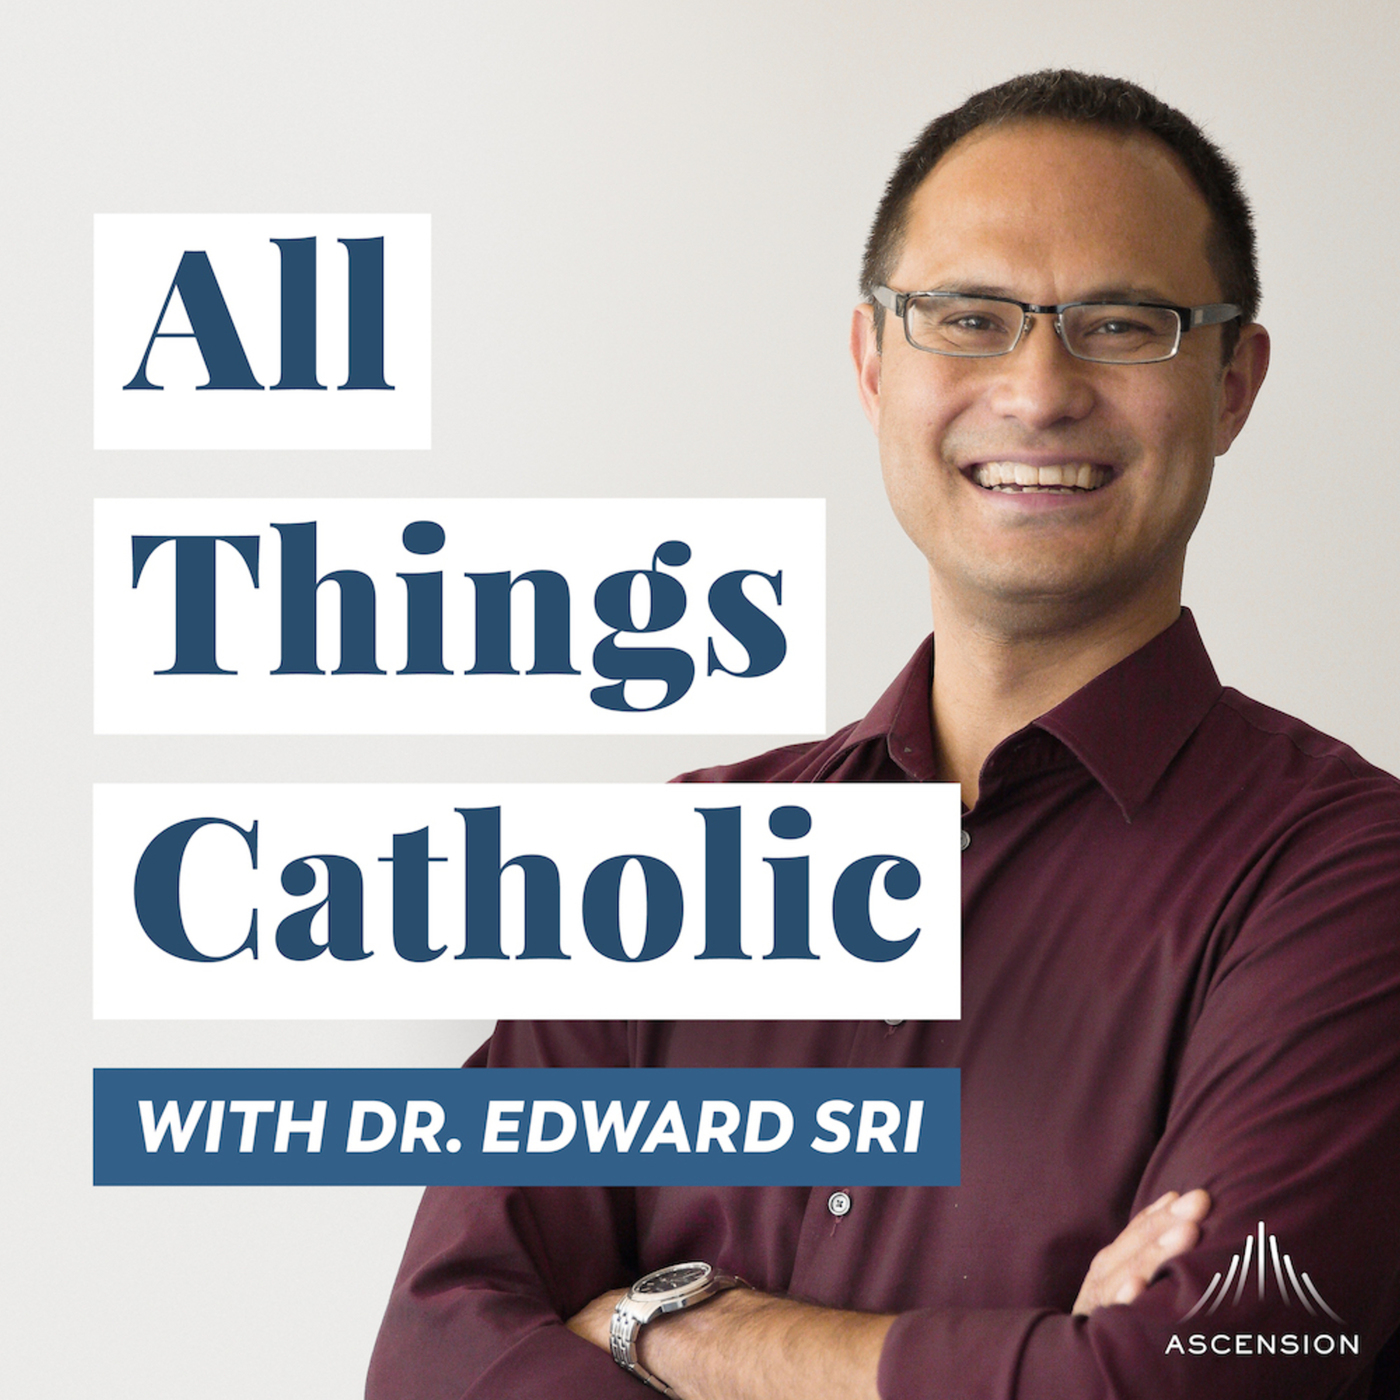 All Things Catholic with Dr. Edward Sri: Do You Want to Be Happy? Practice These 4 Things